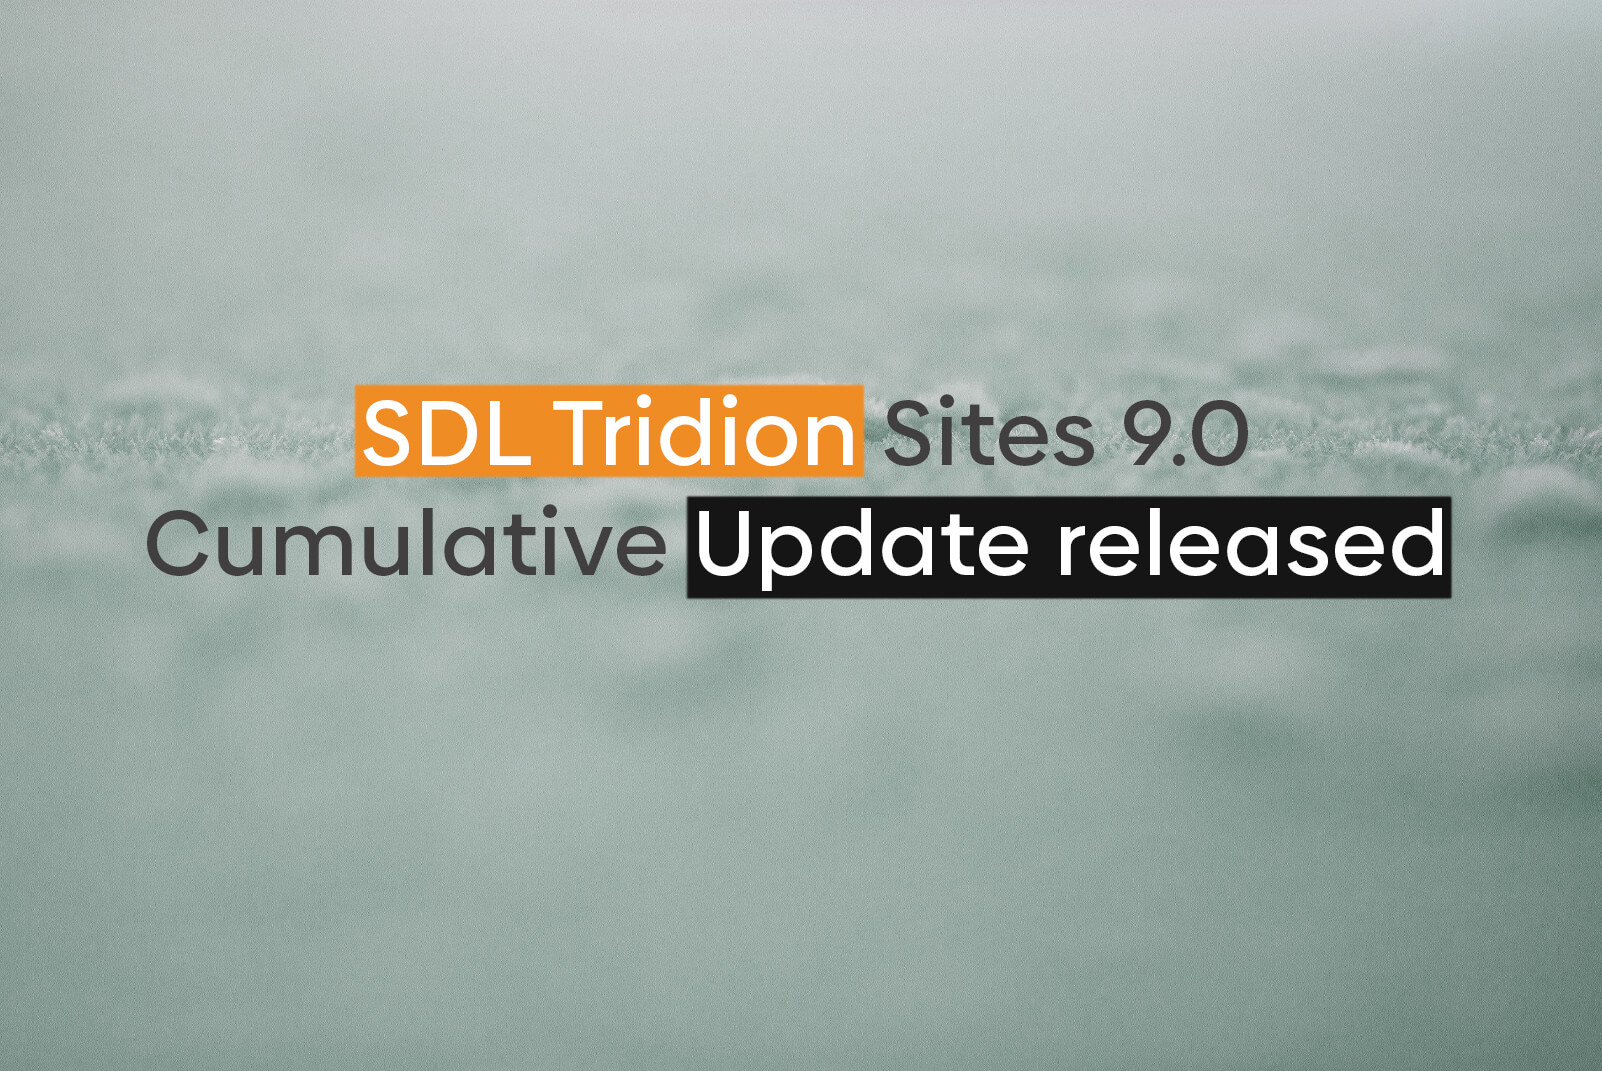 SDL Tridion Sites 9.0 Cumulative Update released